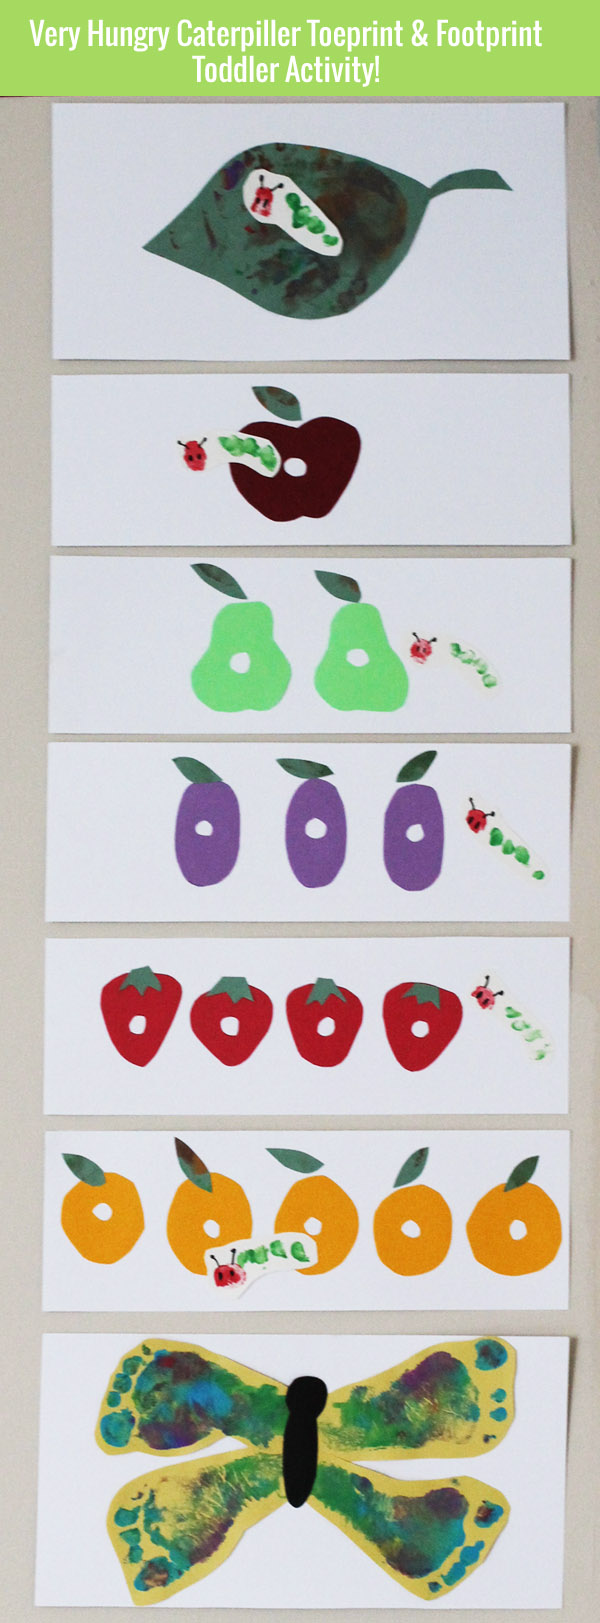 hungry_caterpillar_toddler_activity_toeprints_footprints_title